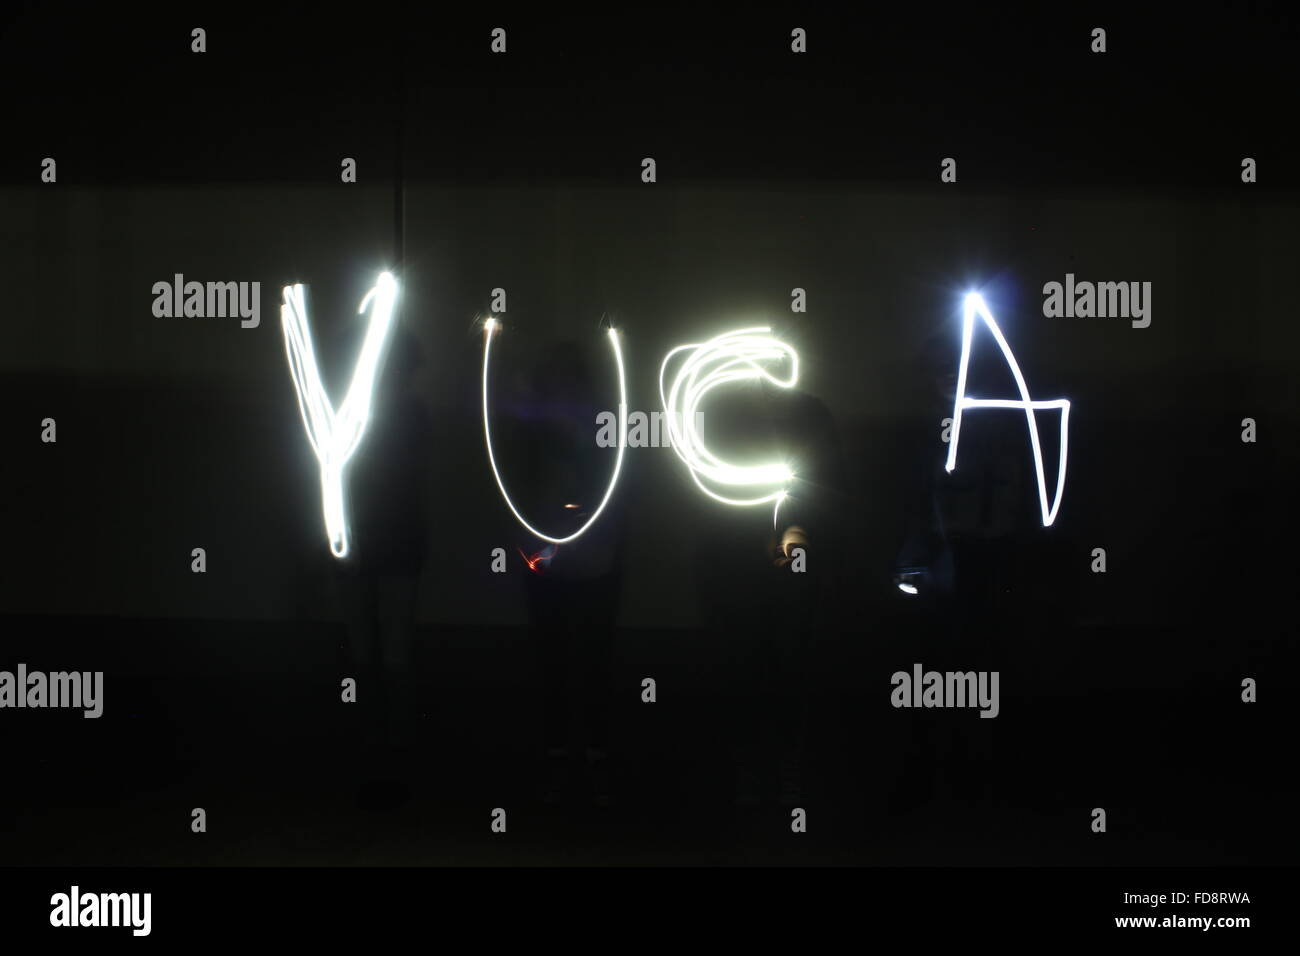 Text Made By Light Trail - Stock Image